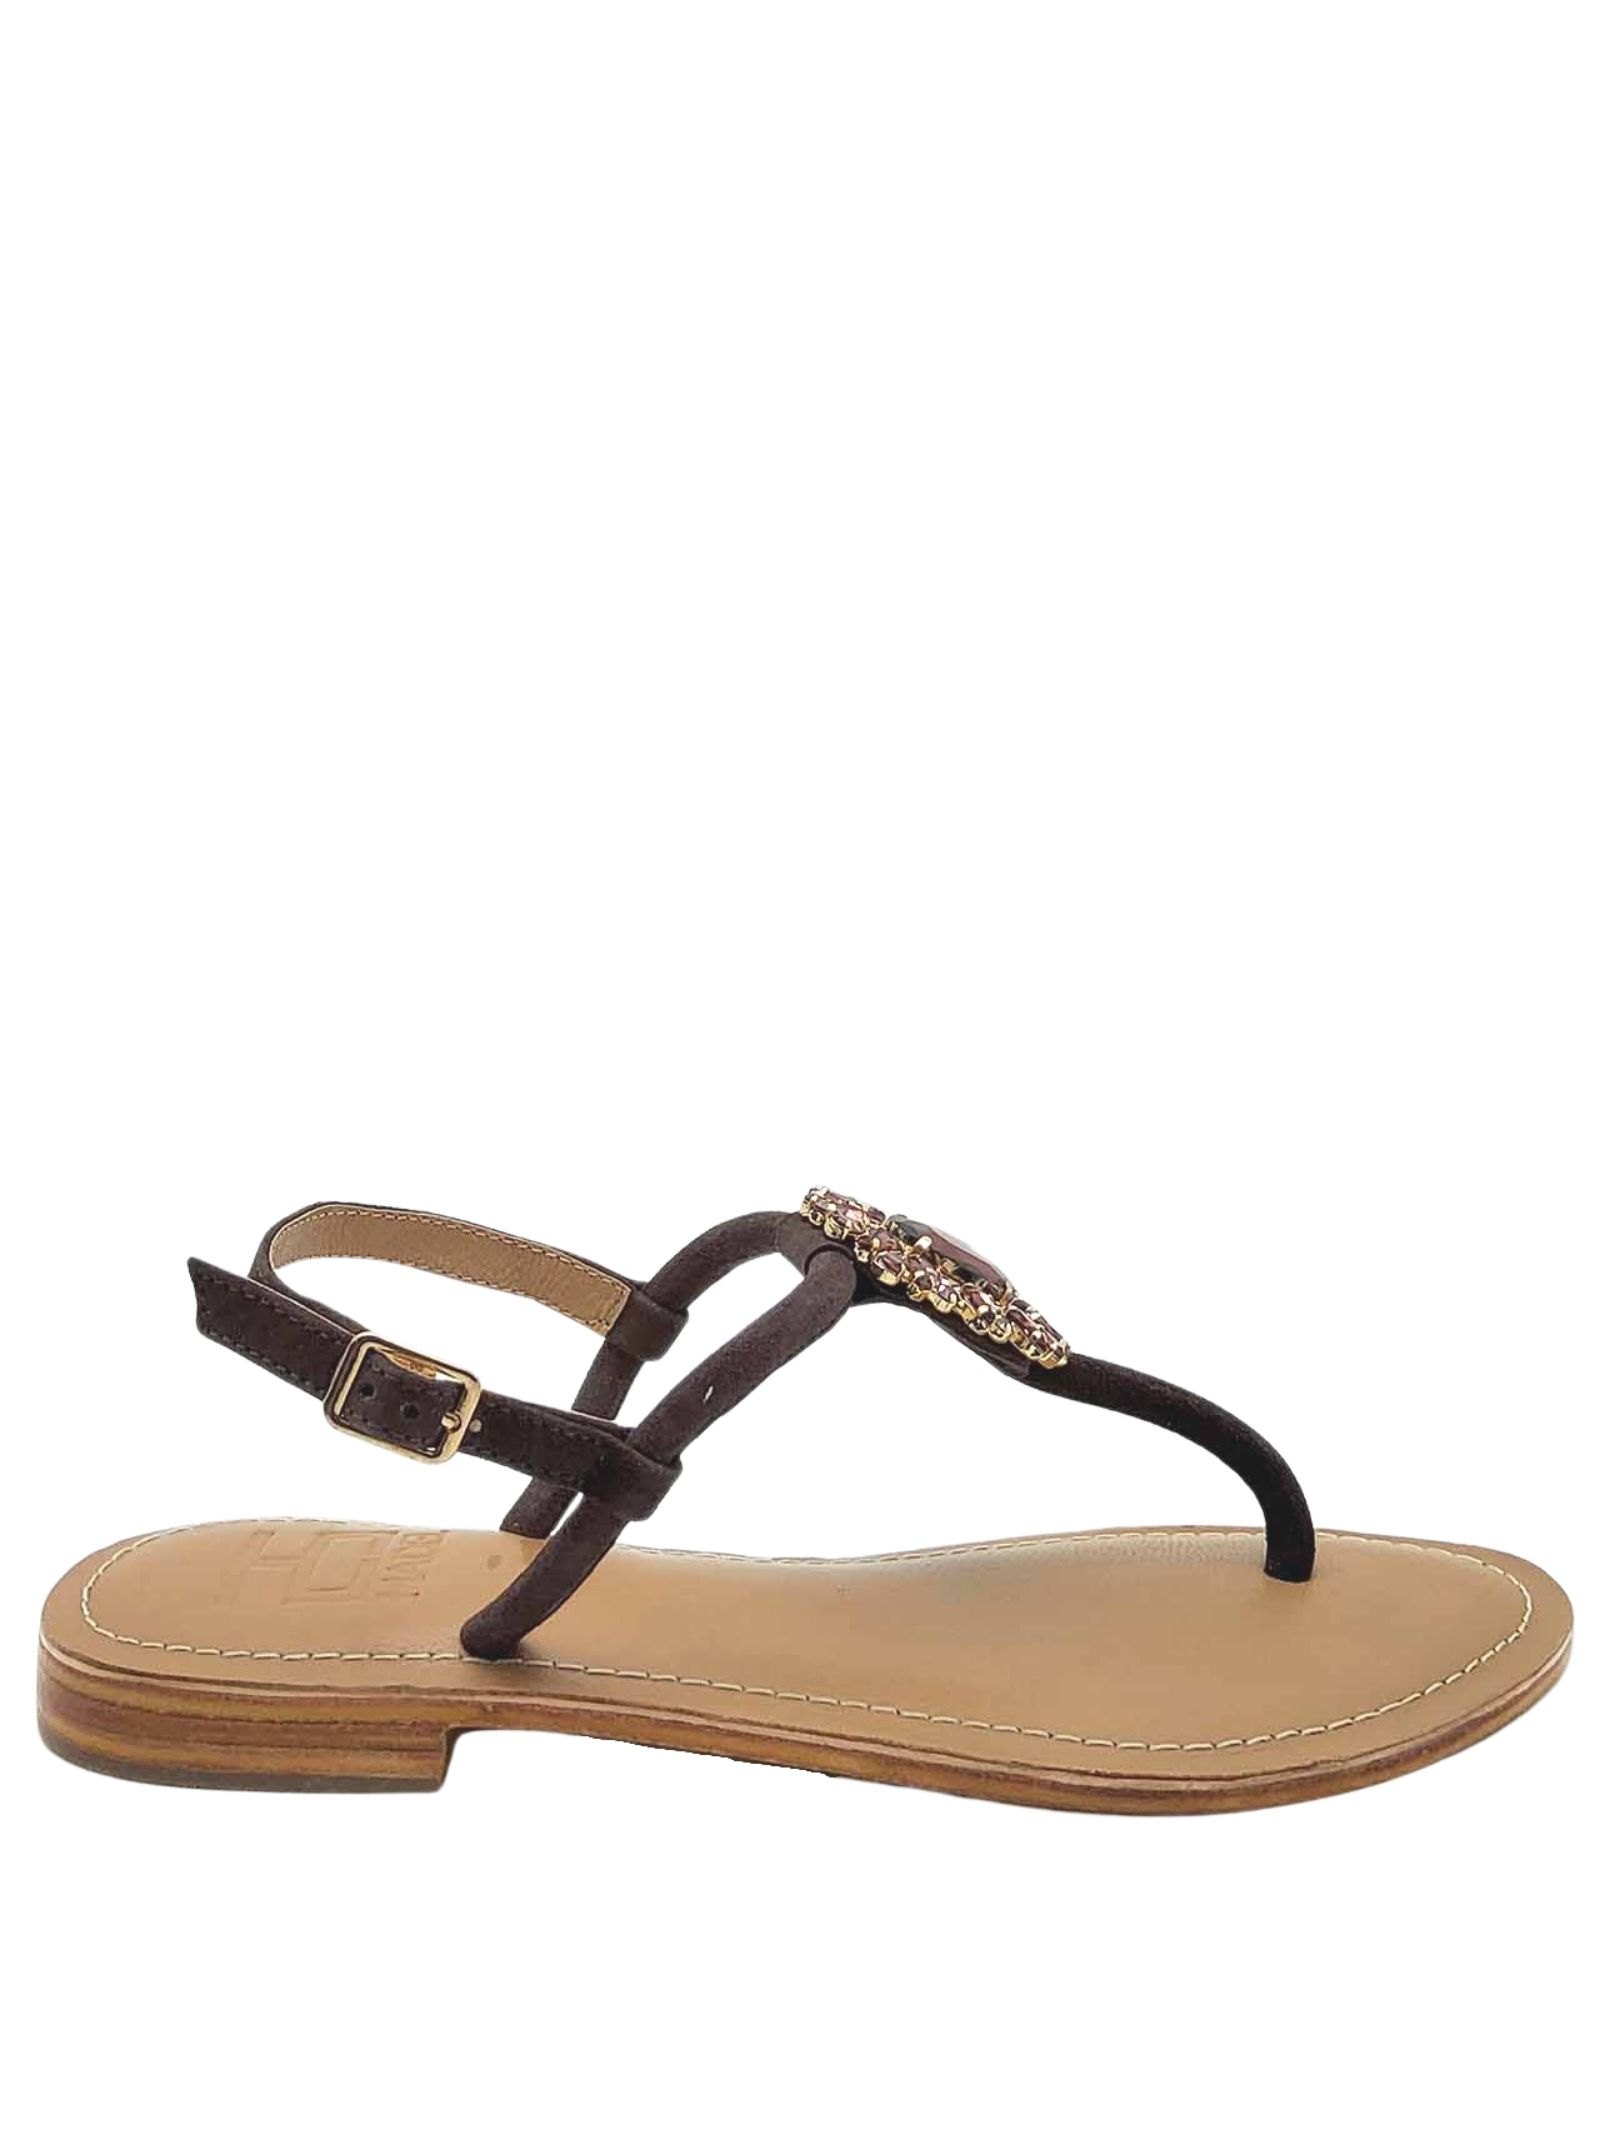 Women's Shoes Sandals Flip Flops in Brown Suede with Jewel Accessory and Strap Hadel   Flat sandals   1SA447013